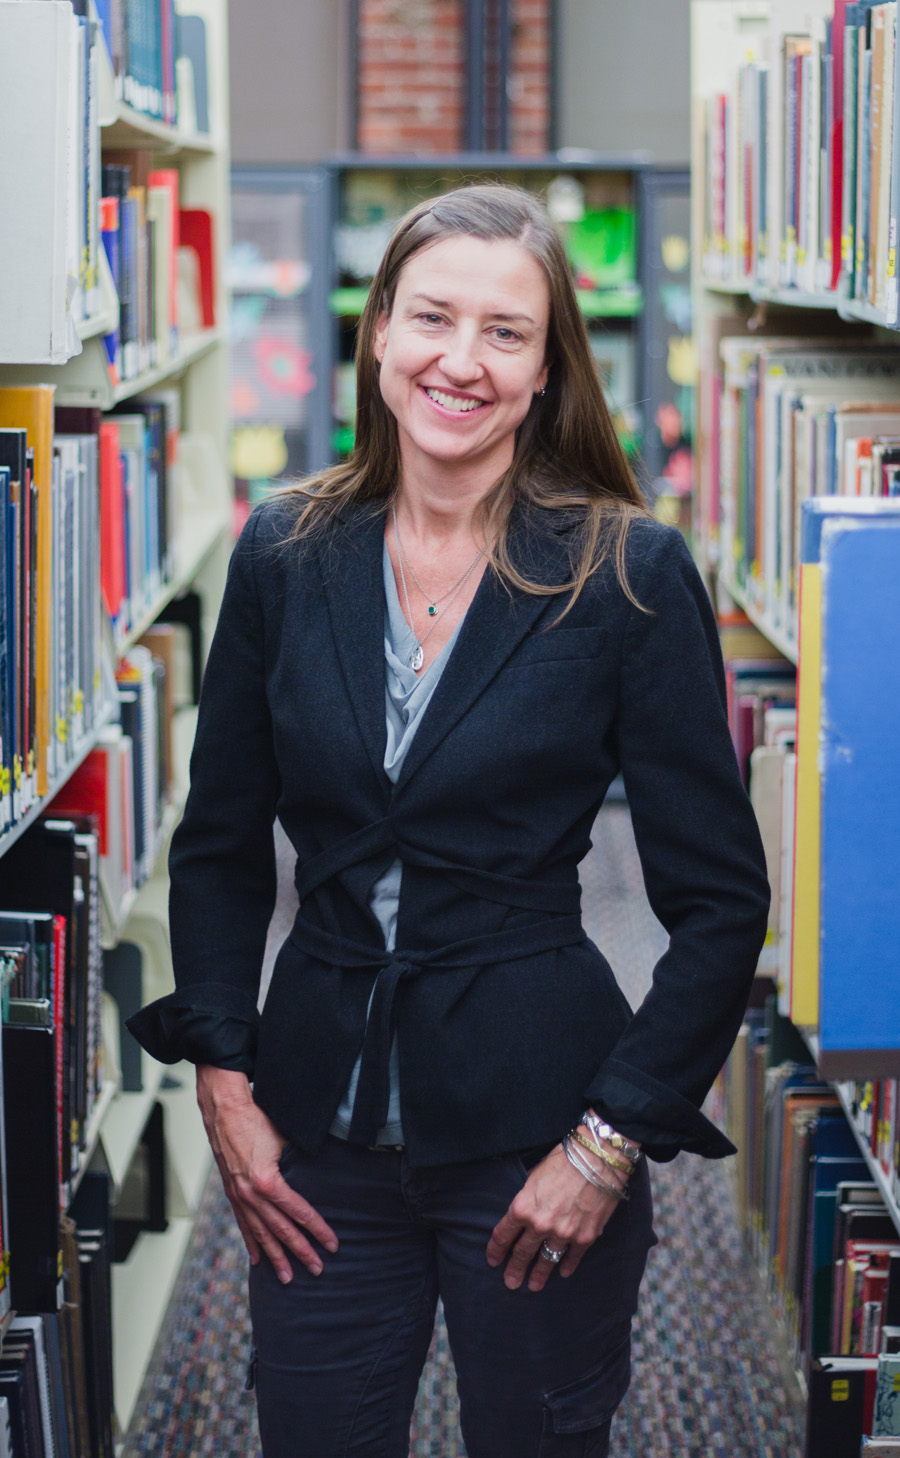 A photo of a white woman with shoulder length light brown hair. She is wearing a black sport coat.